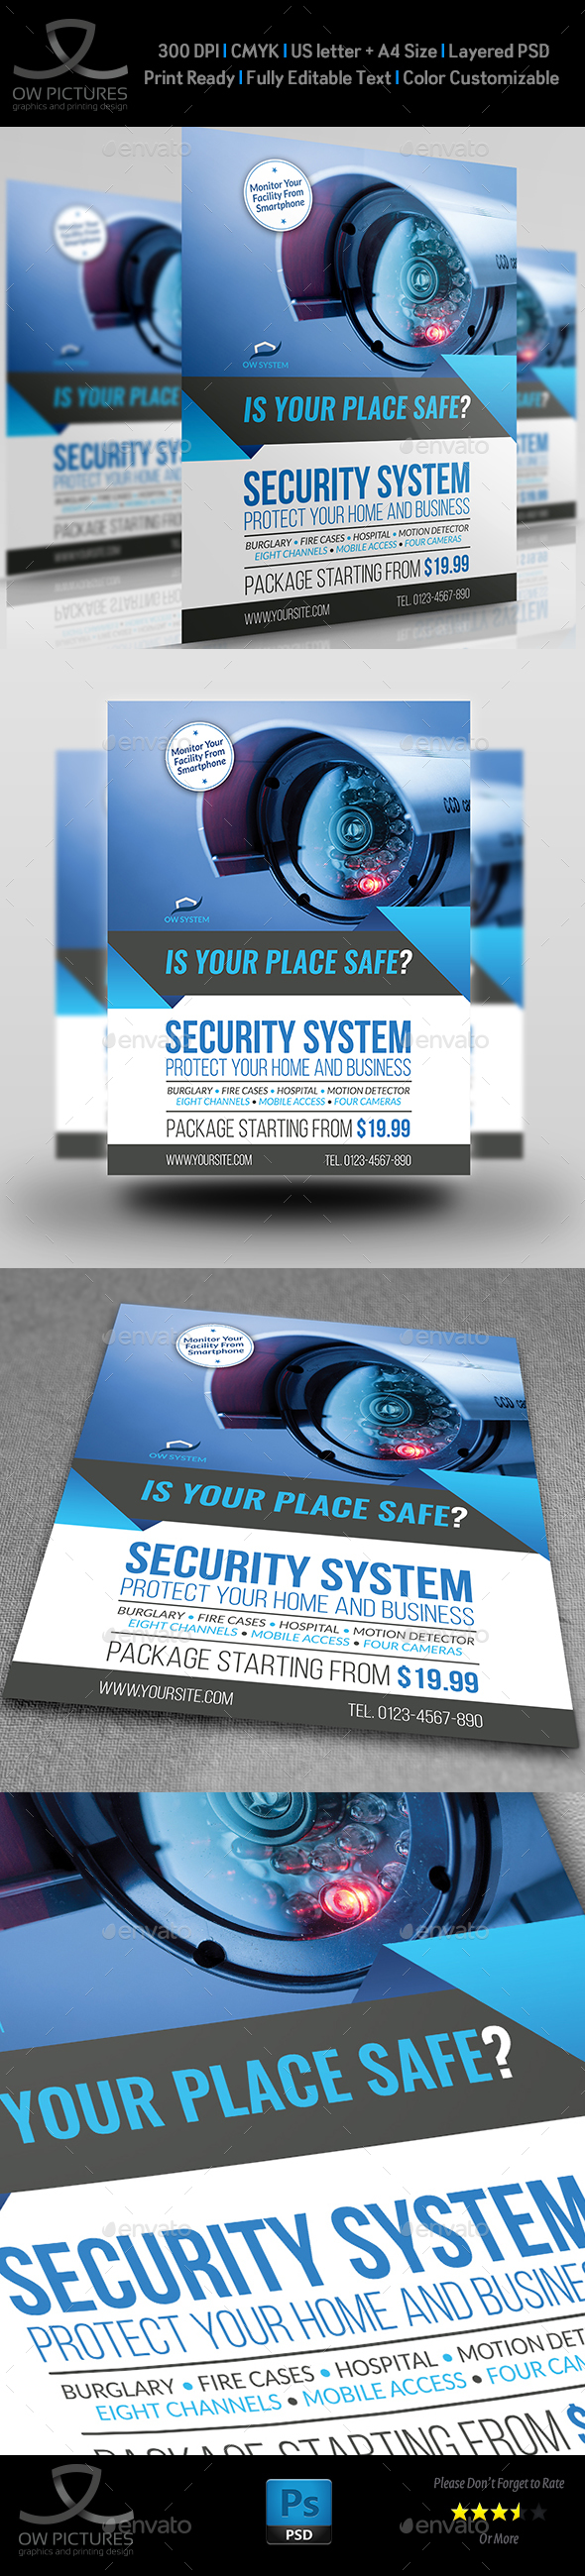 Security System Flyer Template Vol.3 - Commerce Flyers